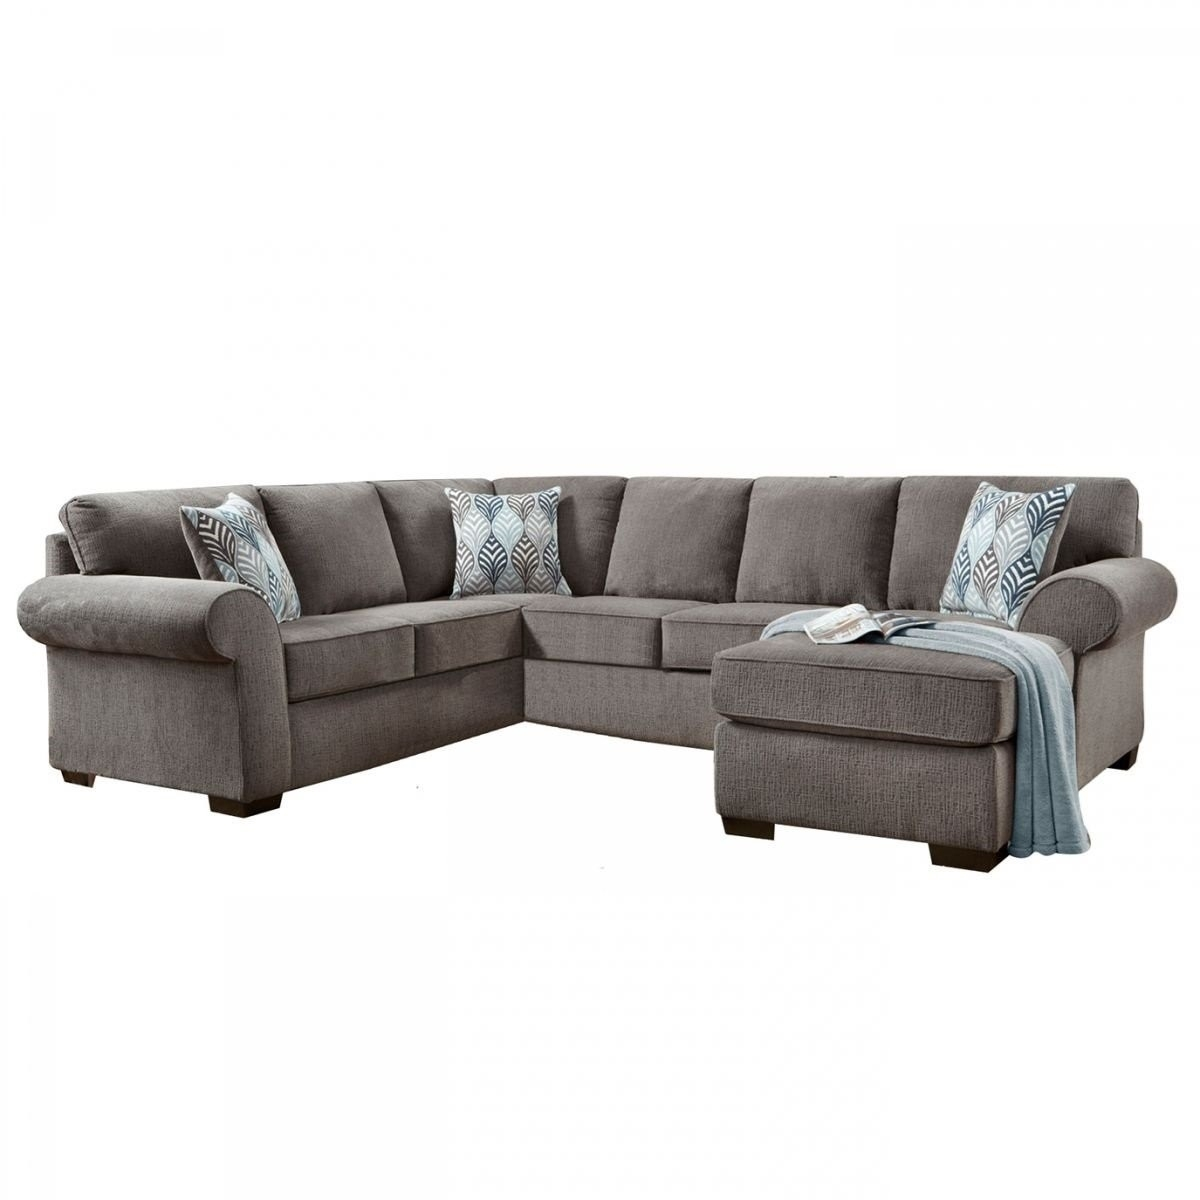 Grey Sectional Mcdade Graphite 2 Piece W Raf Chaise Living Spaces with regard to Mcdade Graphite 2 Piece Sectionals With Laf Chaise (Image 7 of 30)